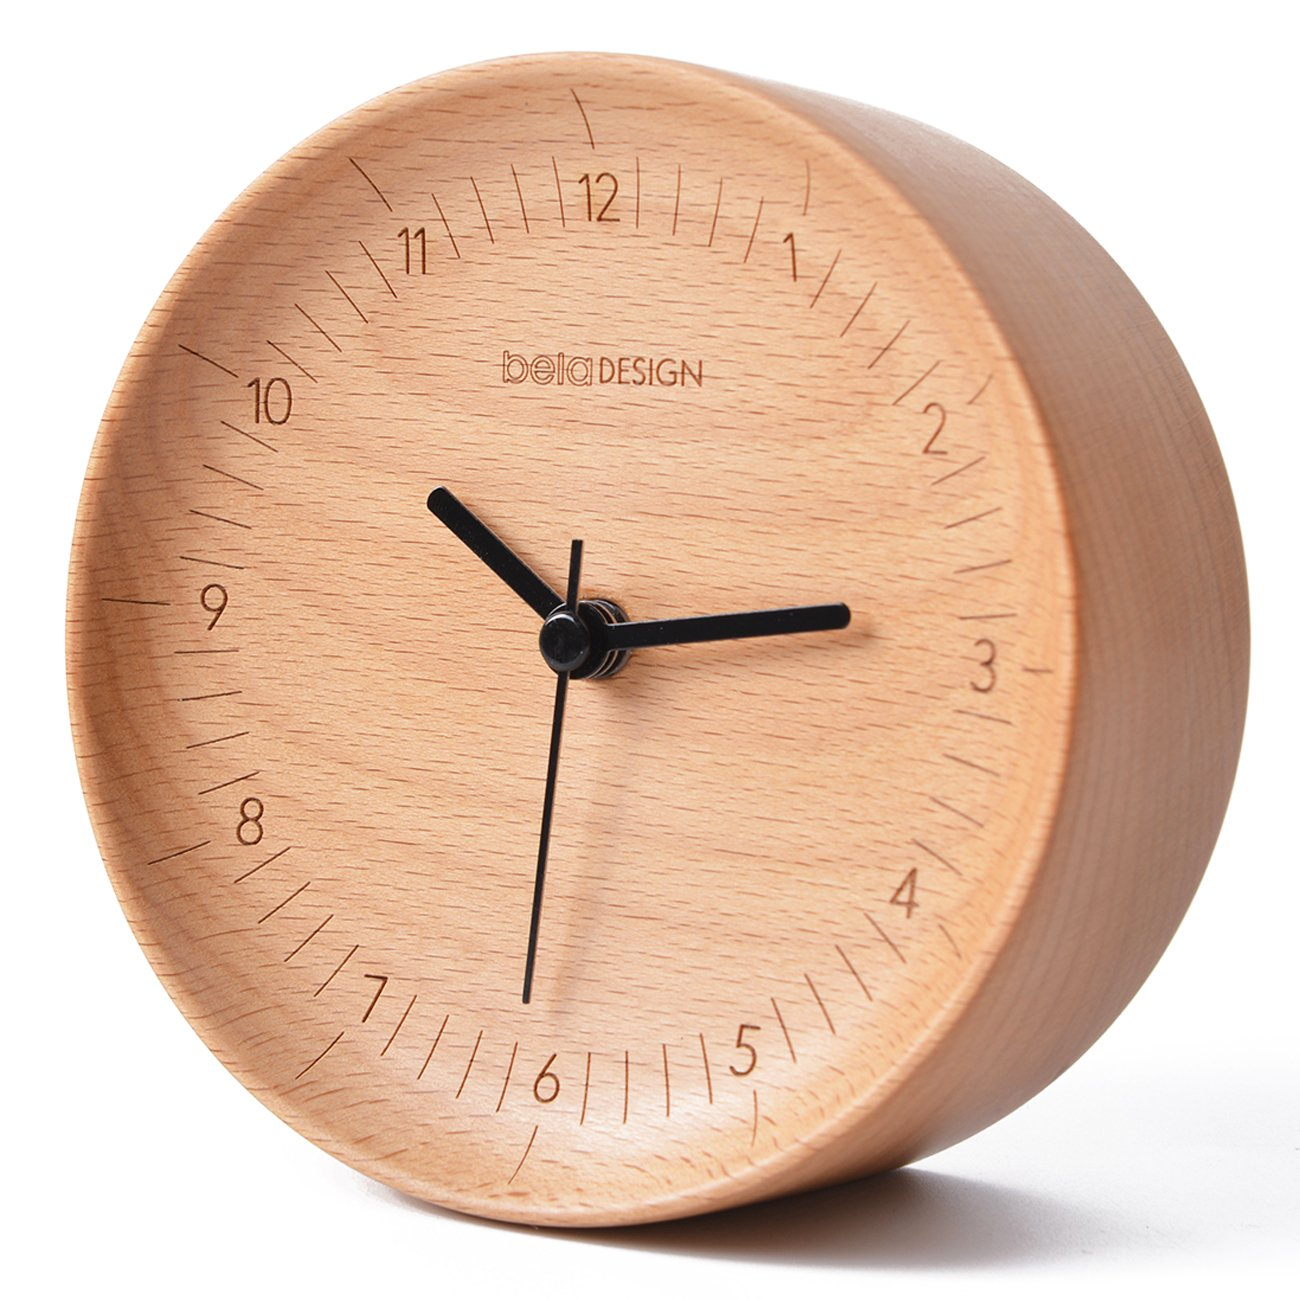 belaDESIGN Alarm clock with handmade-Beech Wood Round Silent Table Alarm Clock